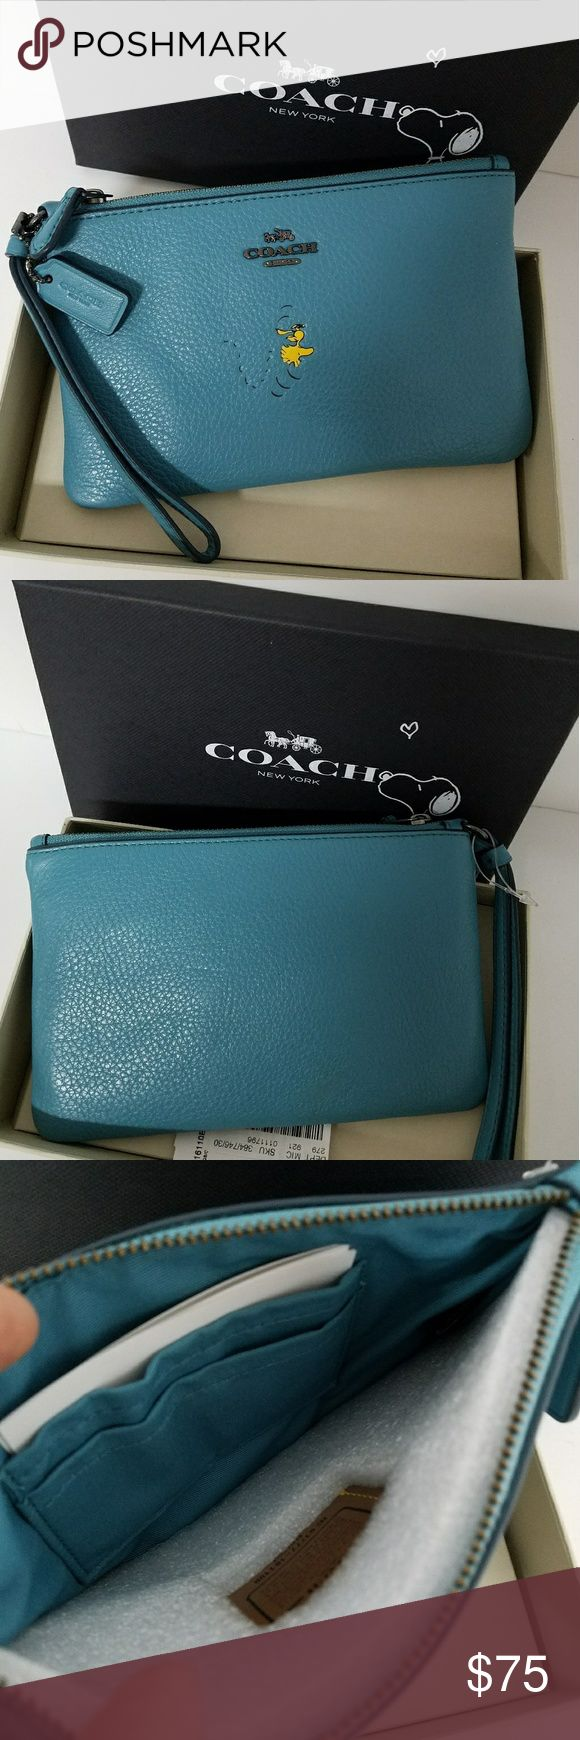 Coach Snoopy Wallet New With Tag and Box  PRICE IS FIRM No TRADE Coach Bags Wallets